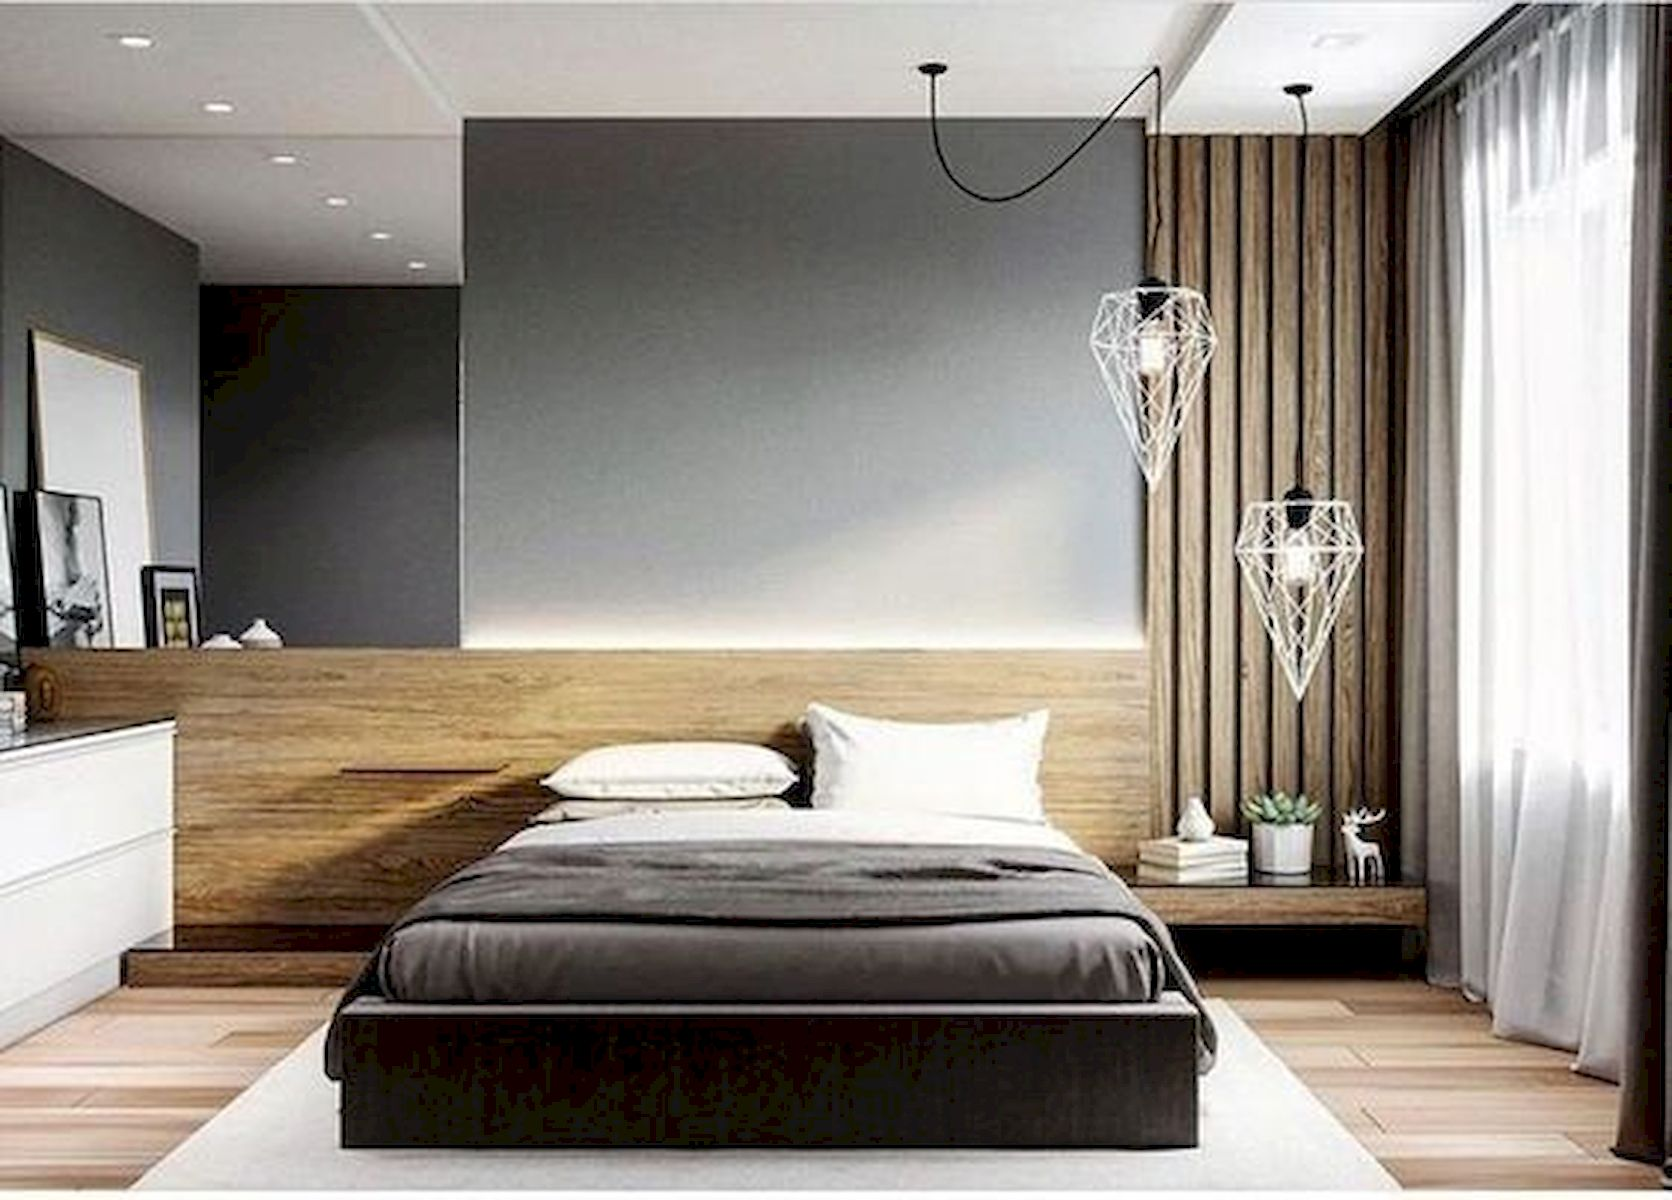 40 Incredible Modern Bedroom Design Ideas That Will Be Relax Place (32)